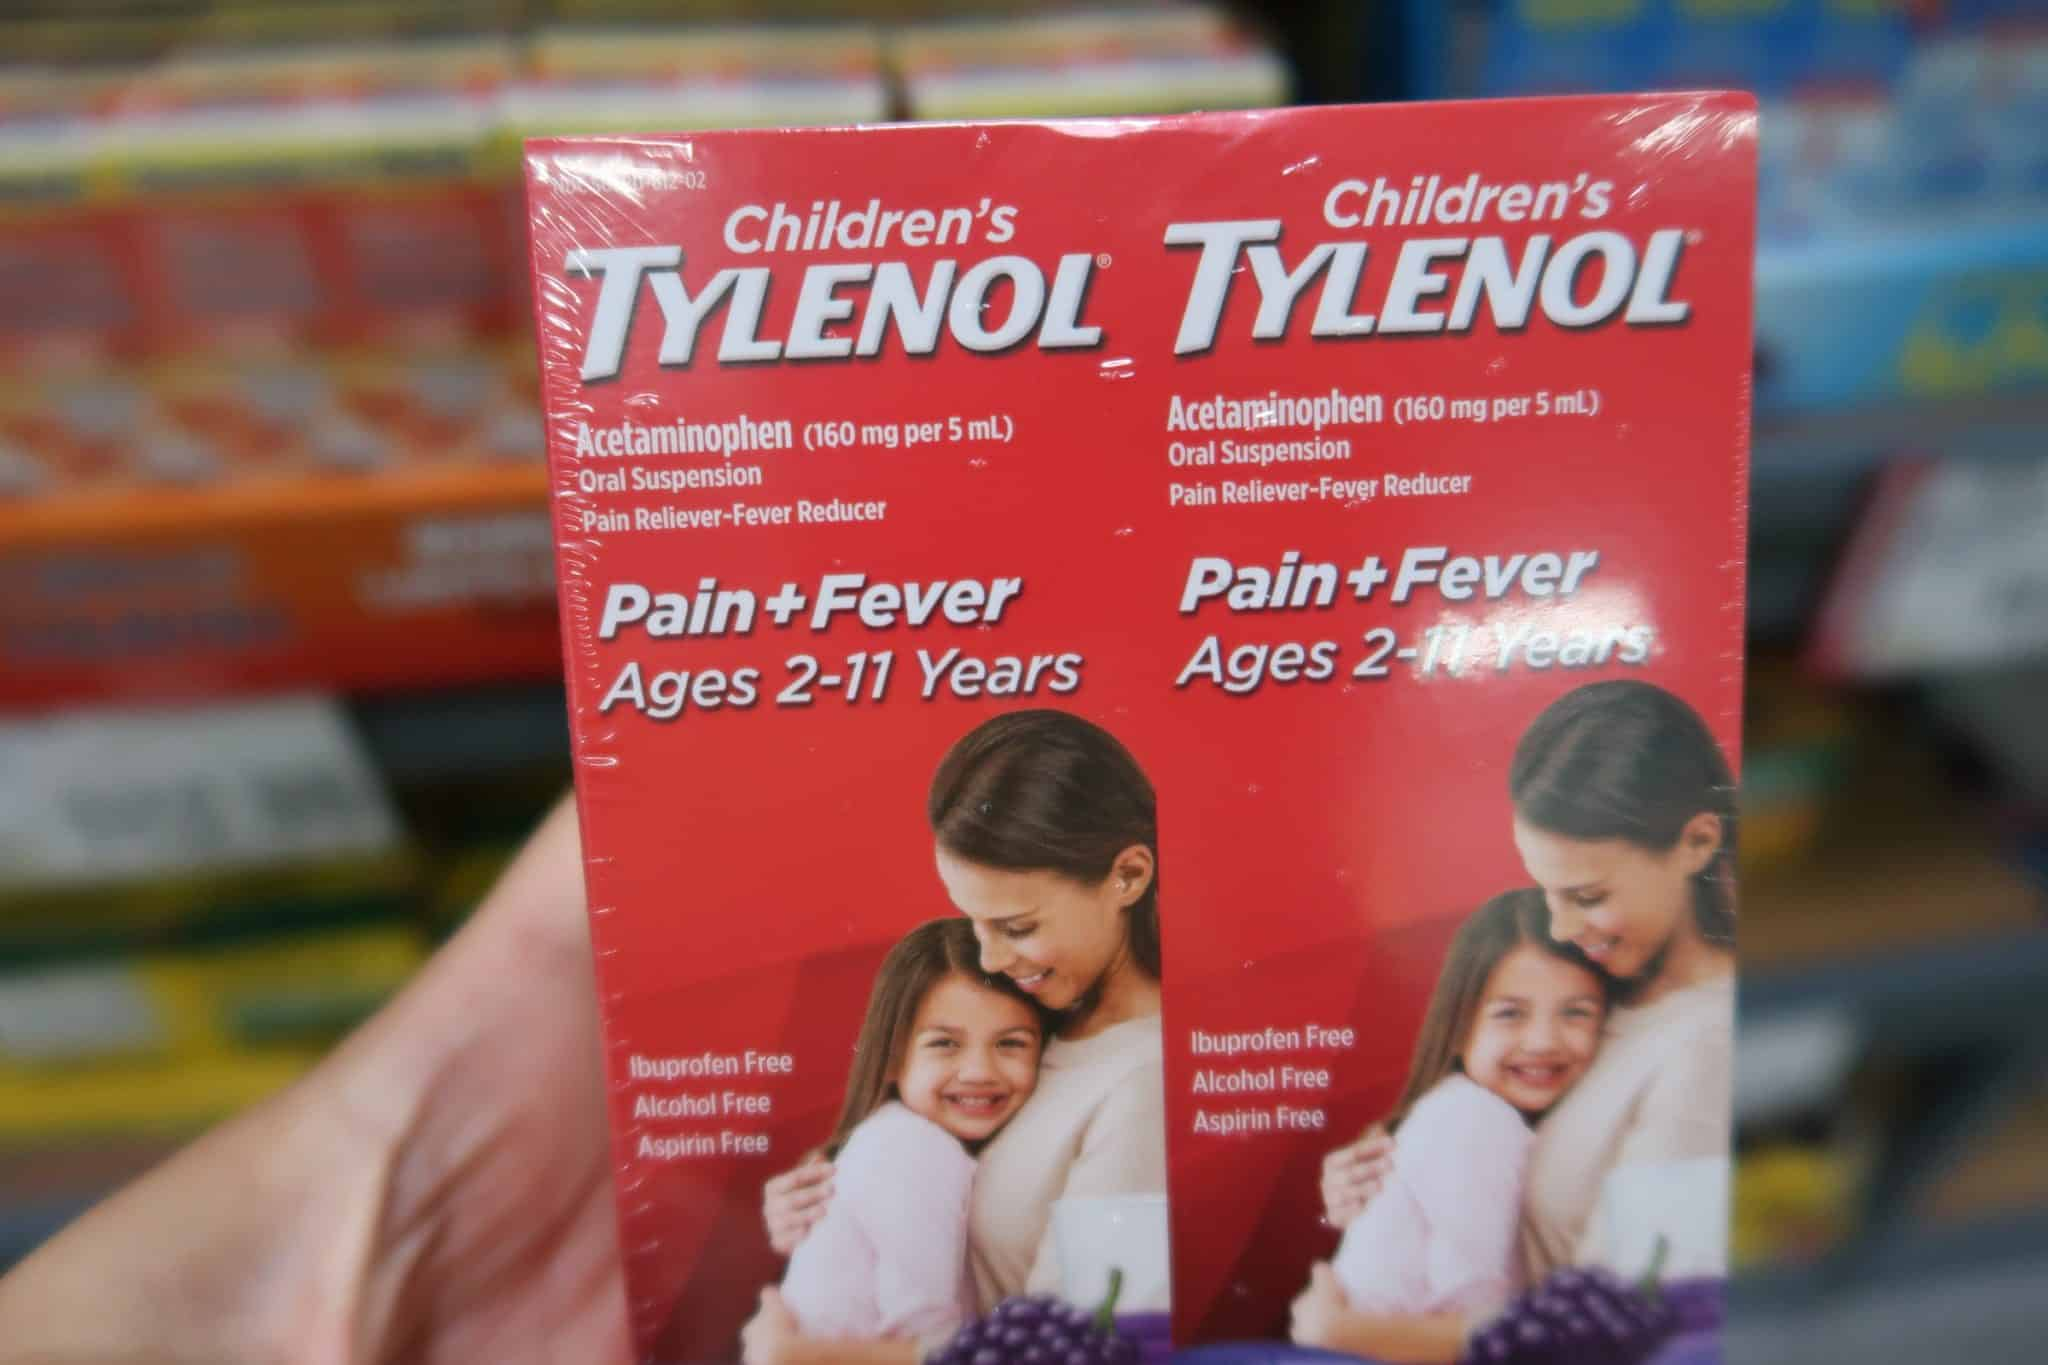 Children's Tylenol ONLY $3.24 ea. after Coupon Stacks